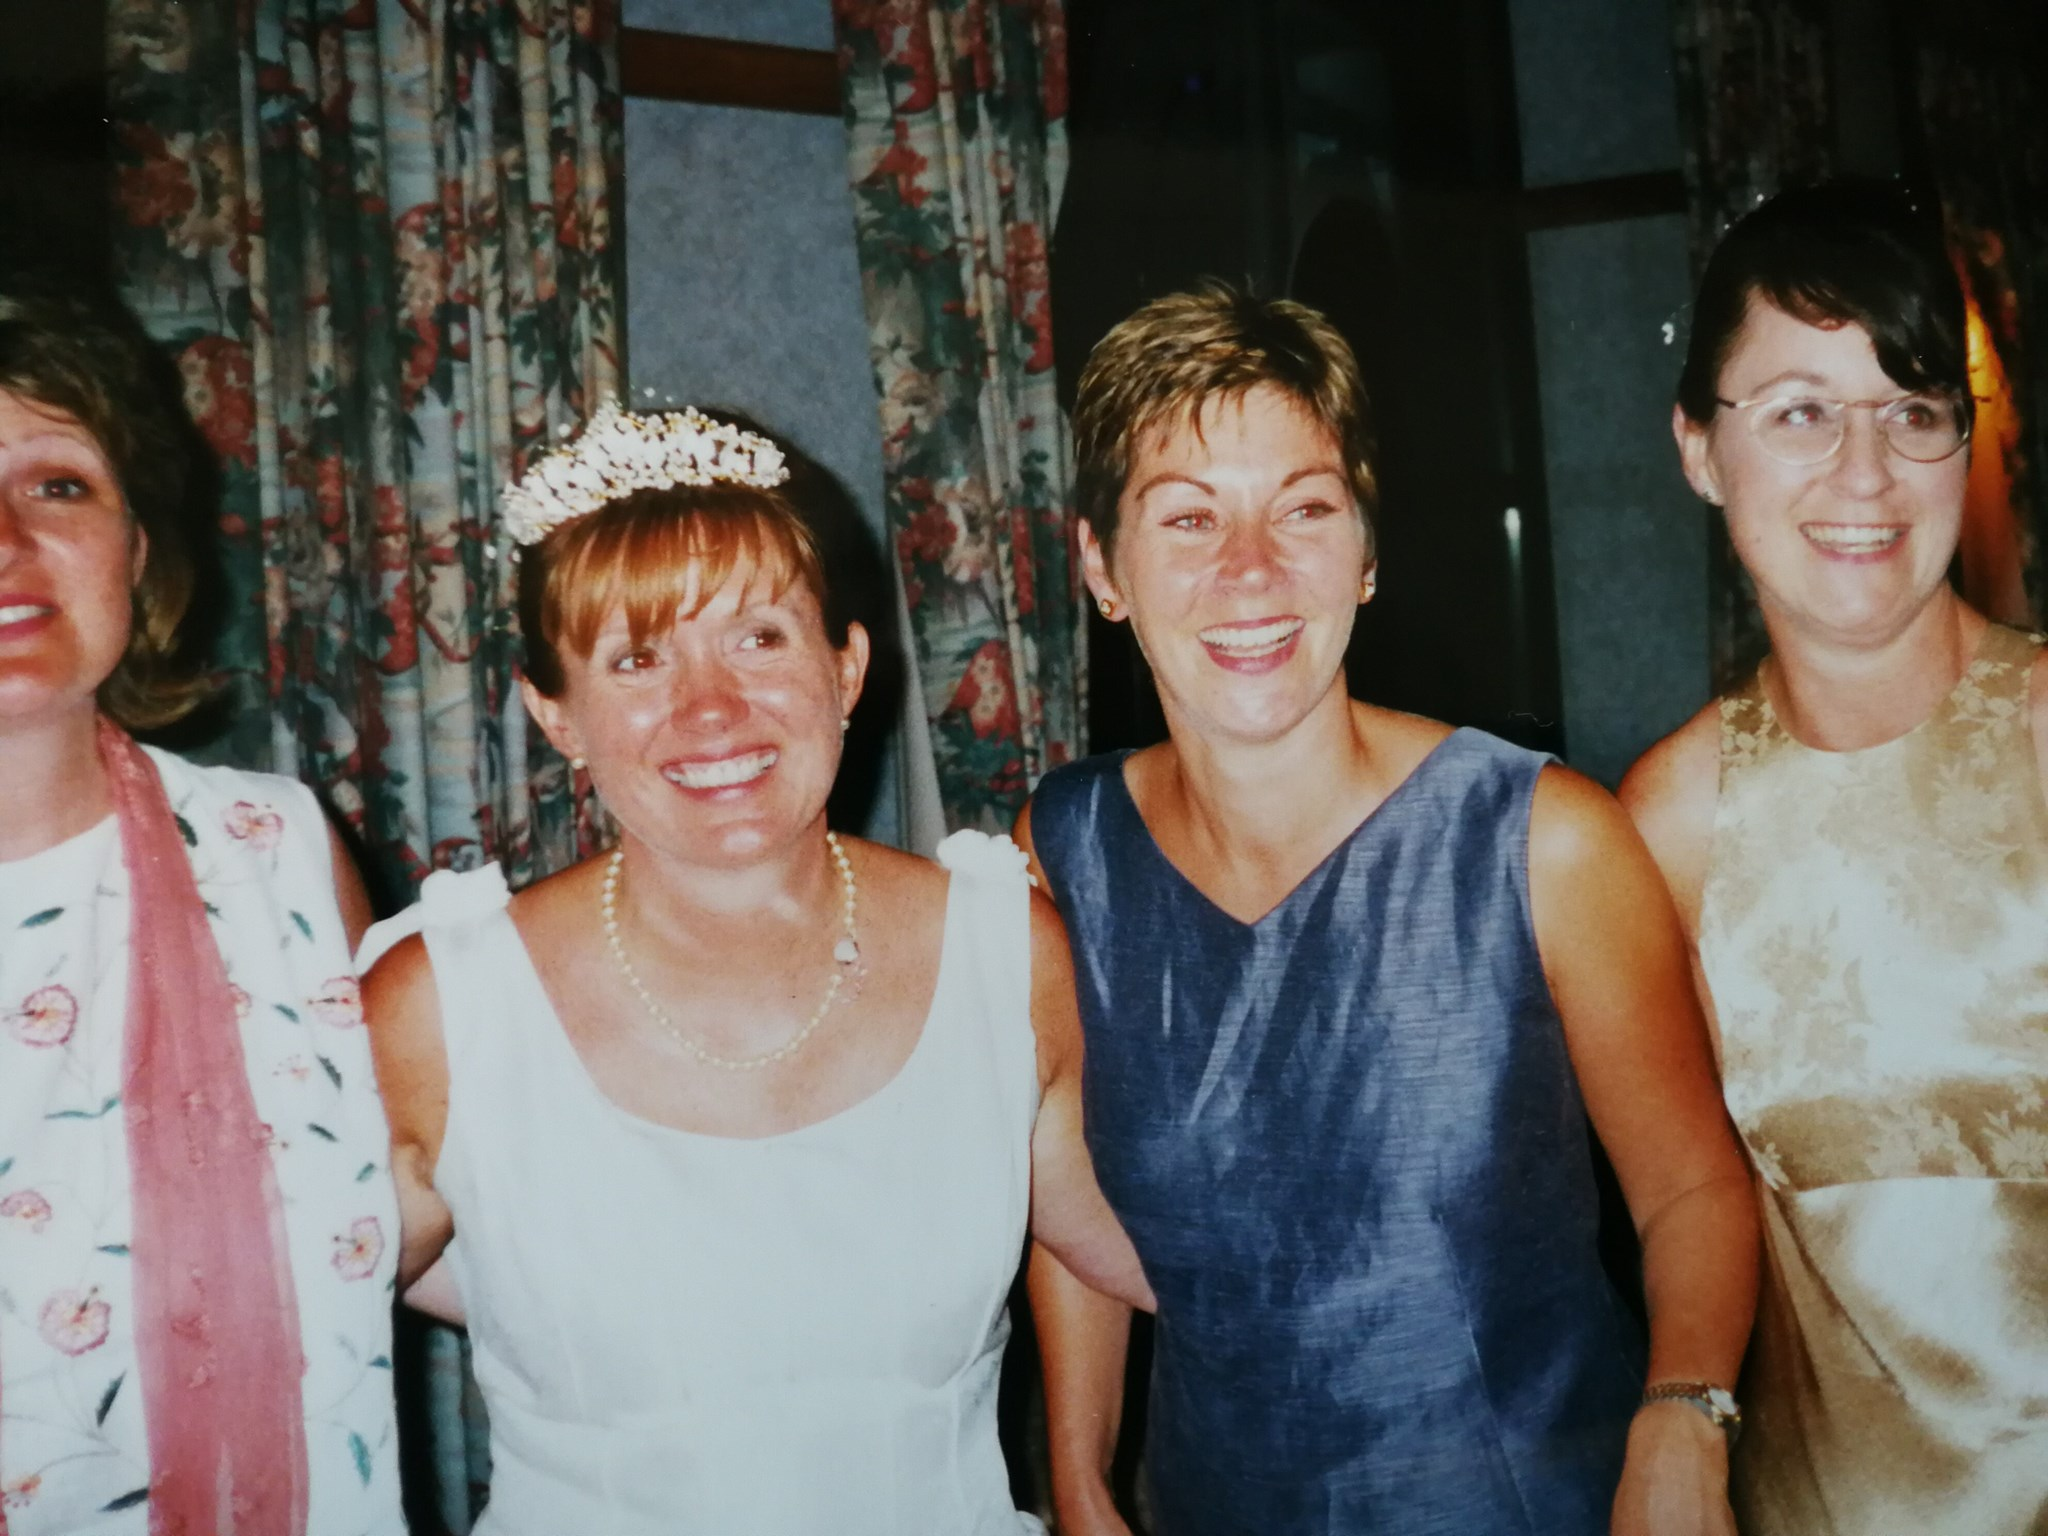 Jackie's wedding day ... a long time friend of Sue, Jill and I